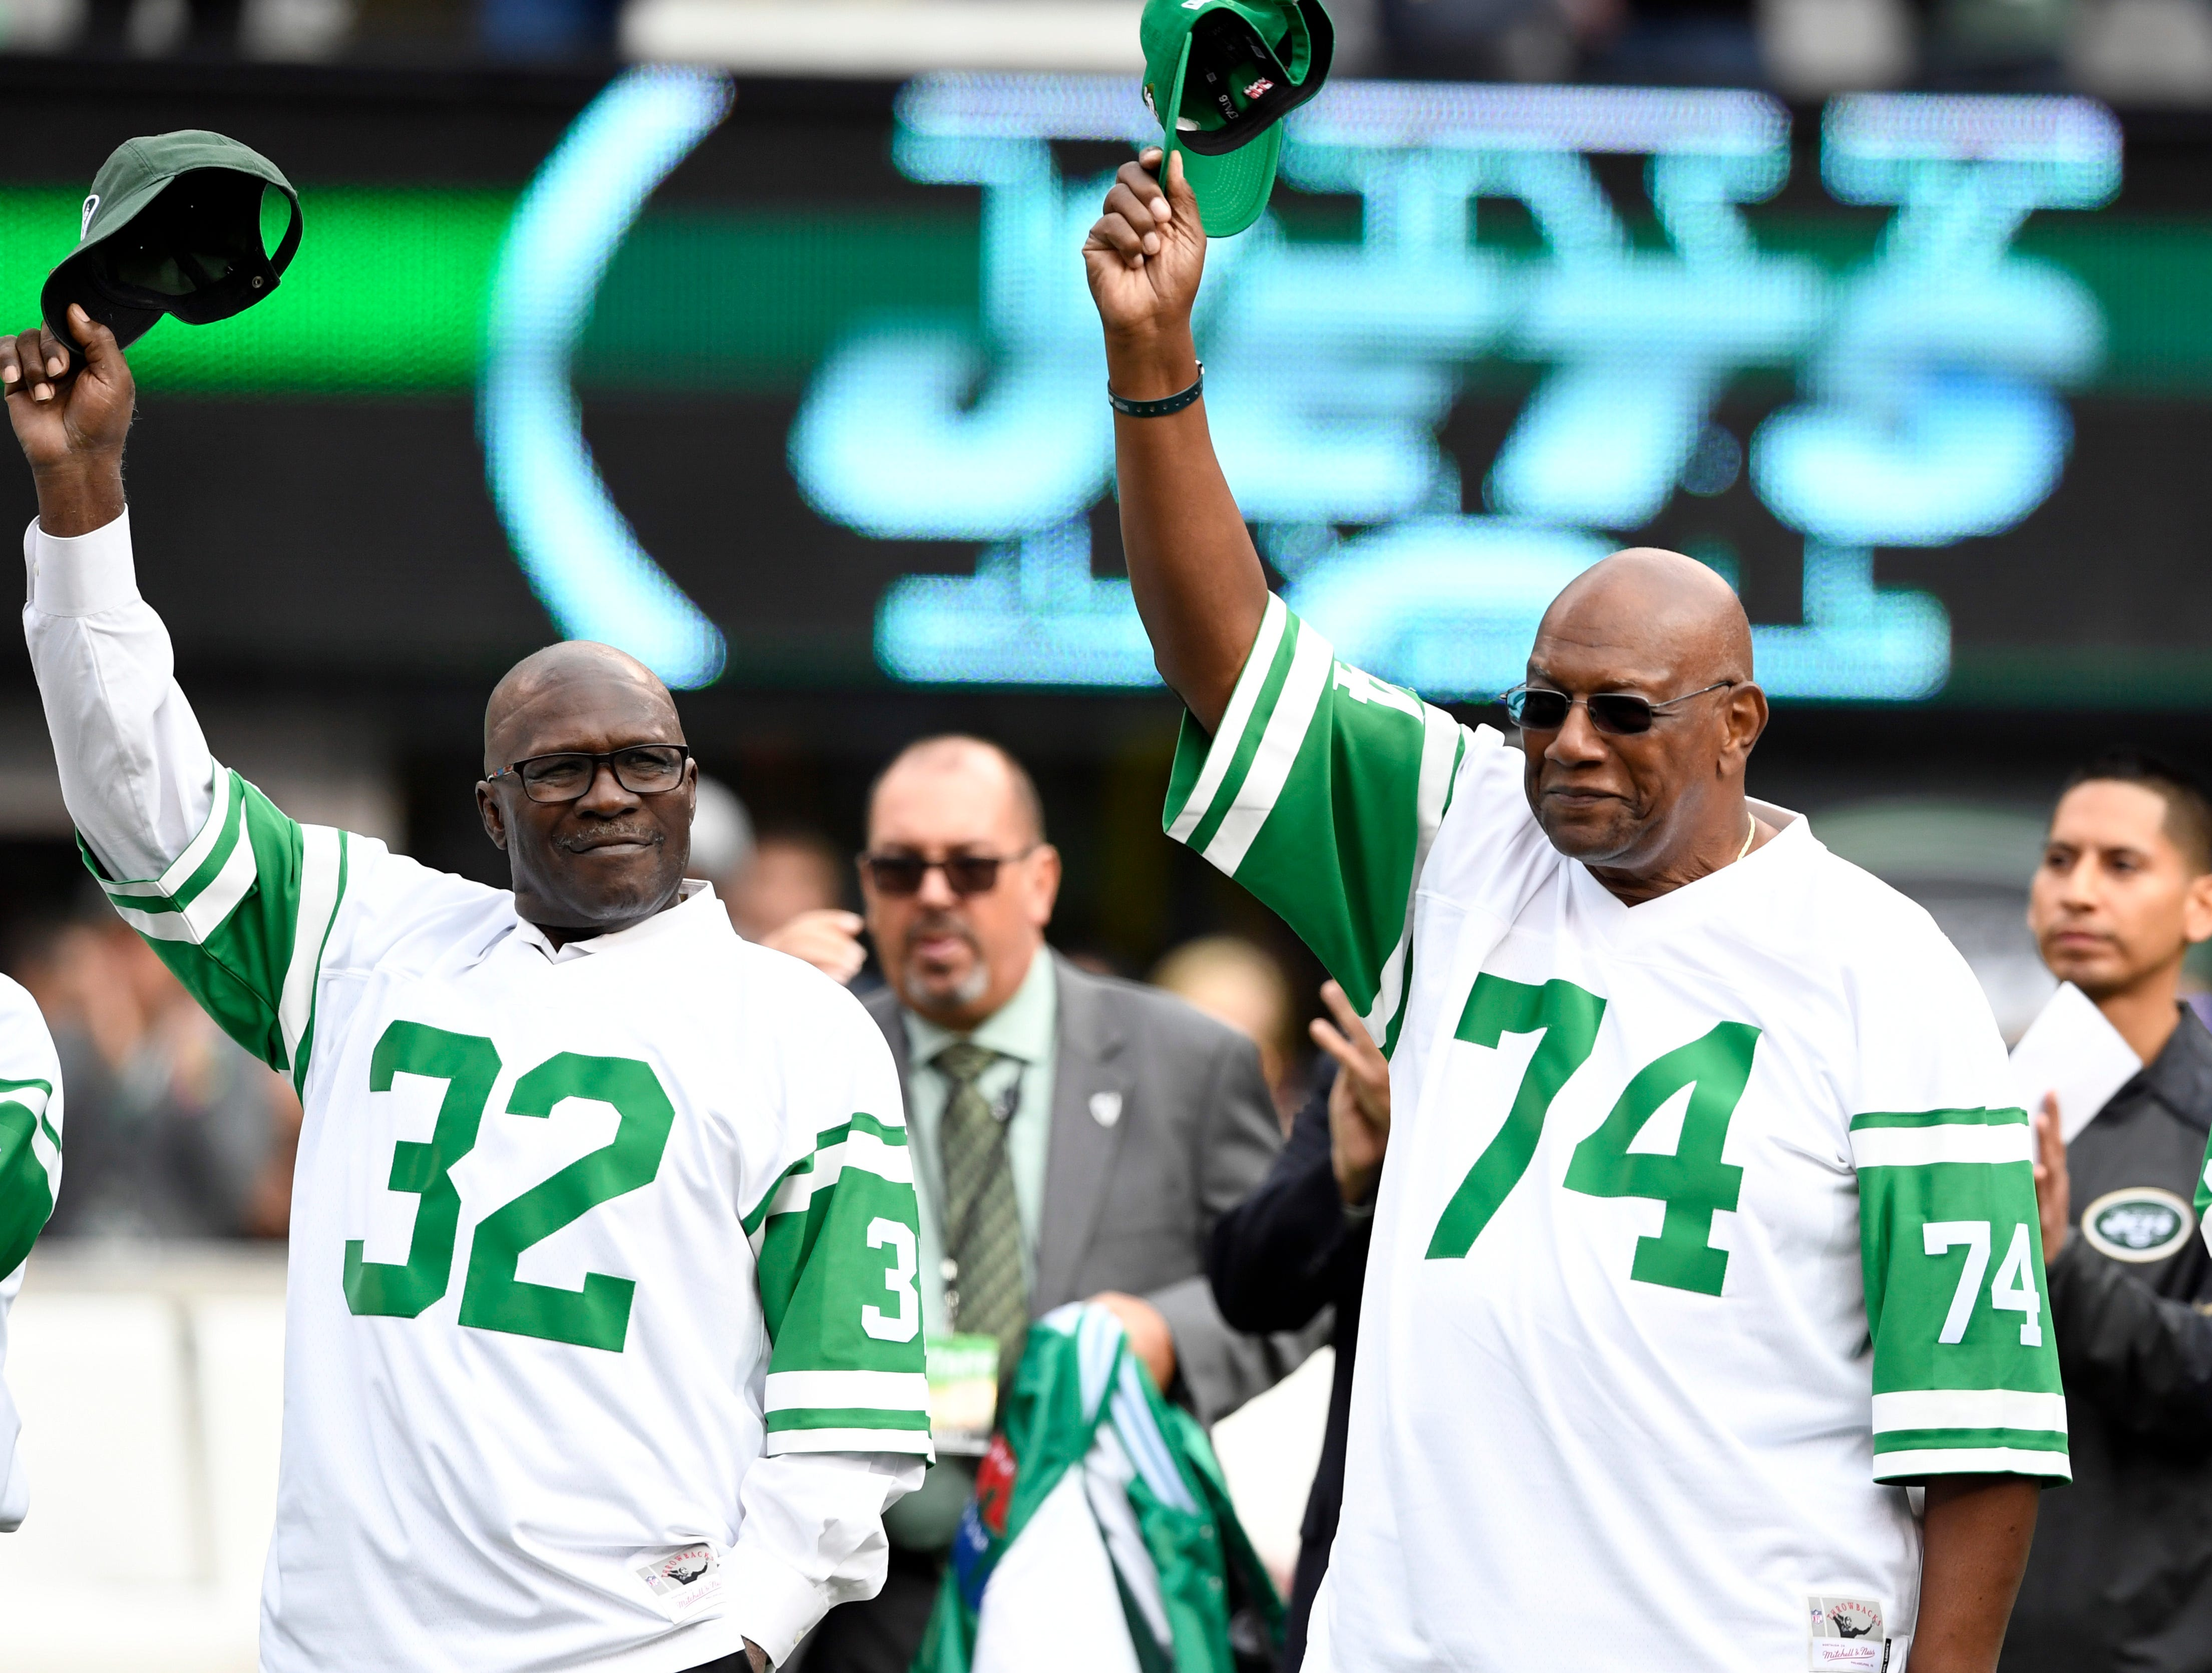 Former New York Jets greats Emerson Boozer (32) and Jeff Richardson (74) wave to the crowd as the 1968 team is honored during halftime. The New York Jets host the Indianapolis Colts in Week 6 on Sunday, Oct. 14, 2018, in East Rutherford.